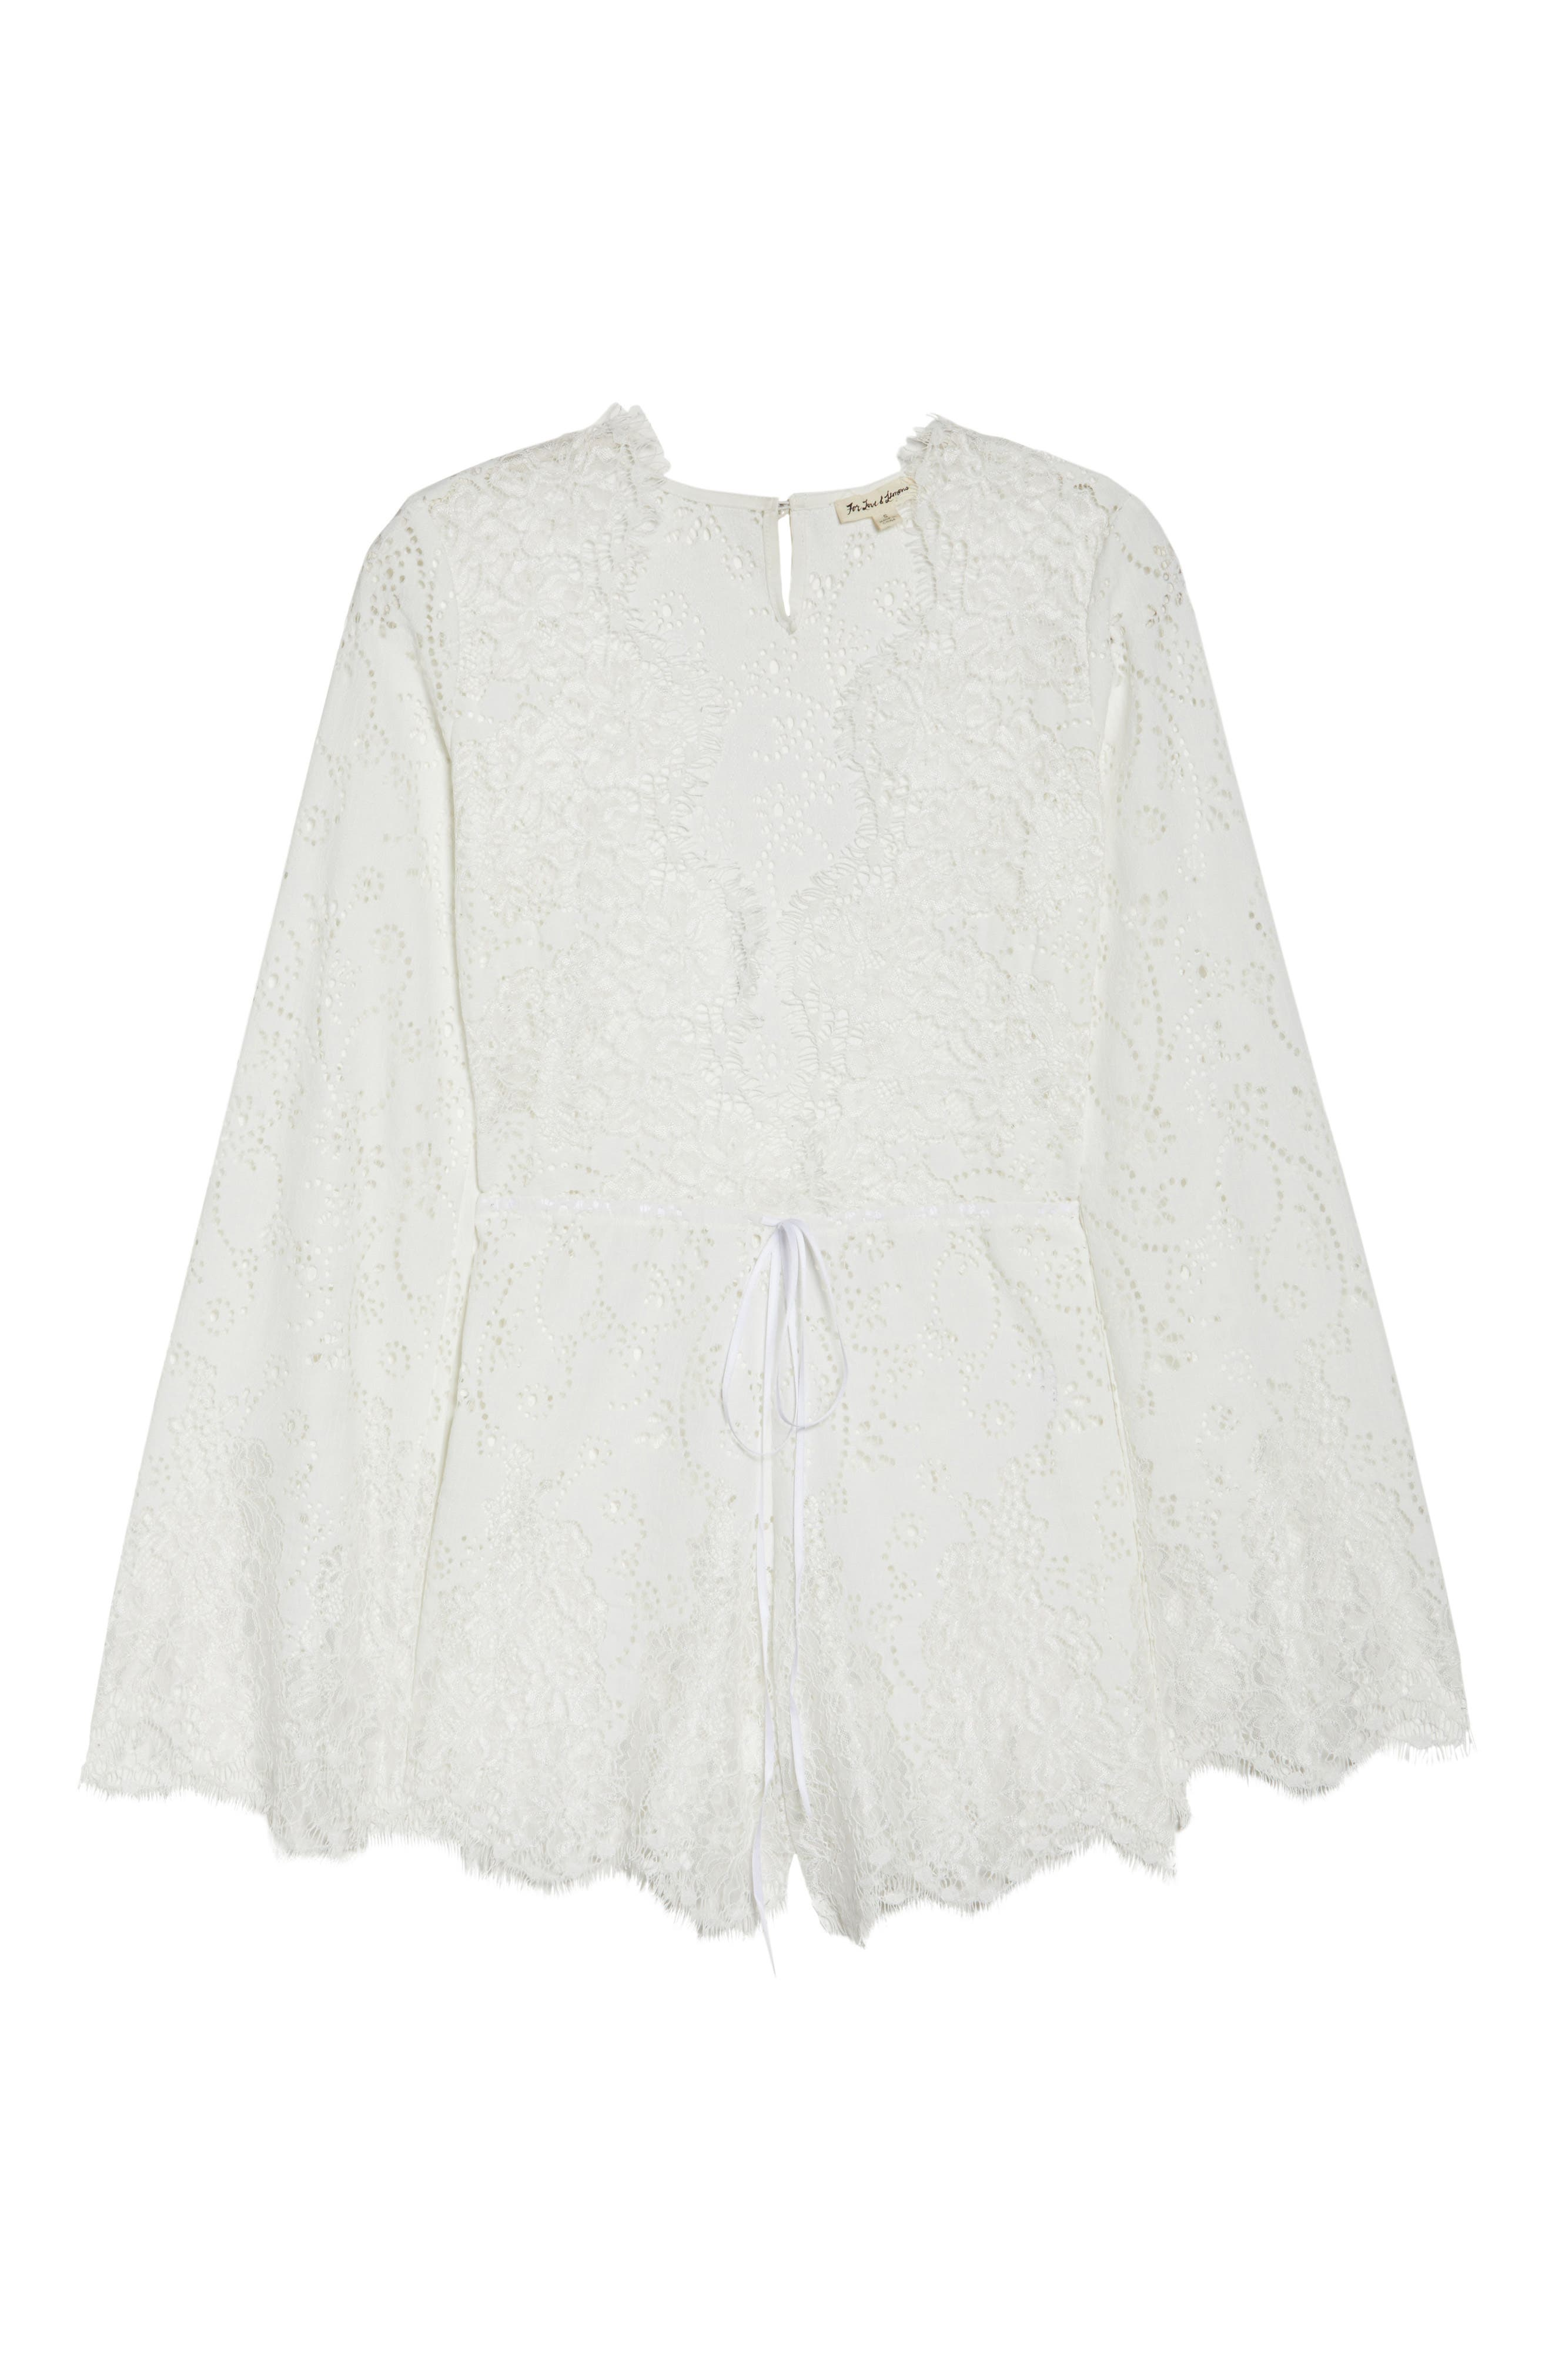 Olympia Lace Cover-Up Romper,                             Alternate thumbnail 12, color,